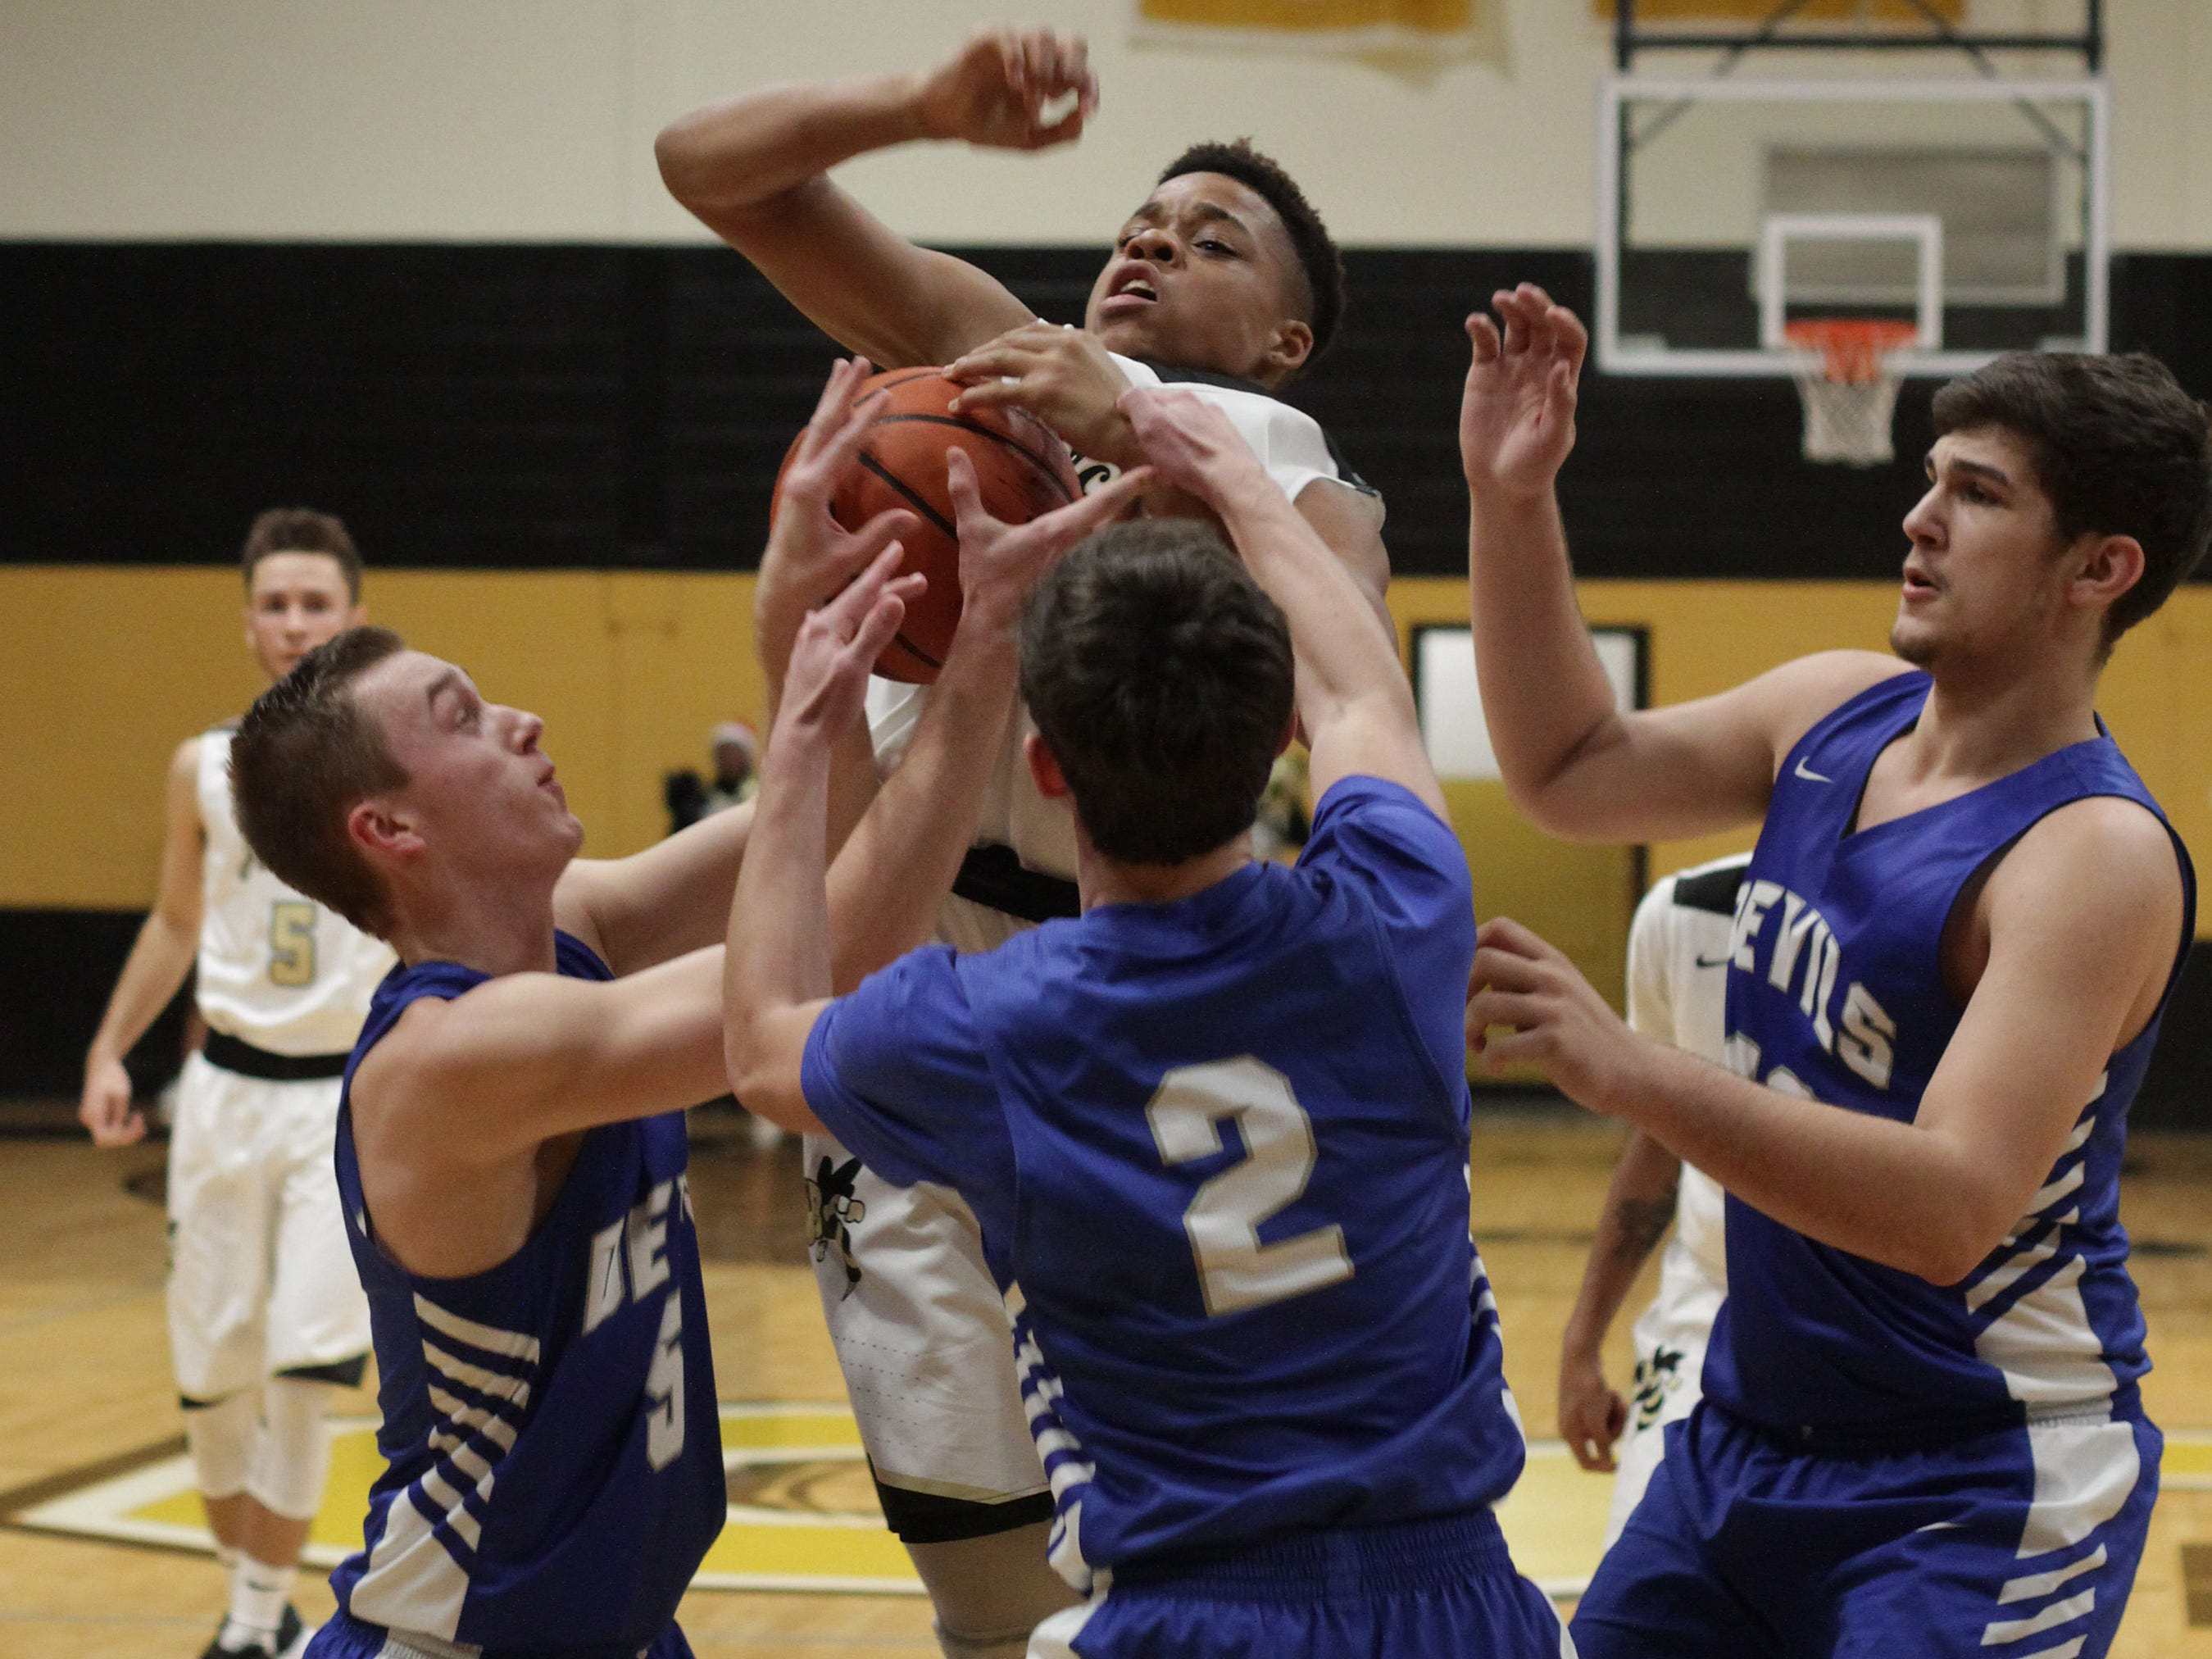 Springfield's Keyshawn Robinson is triple teamed by White House on Tuesday, December 18, 2018.